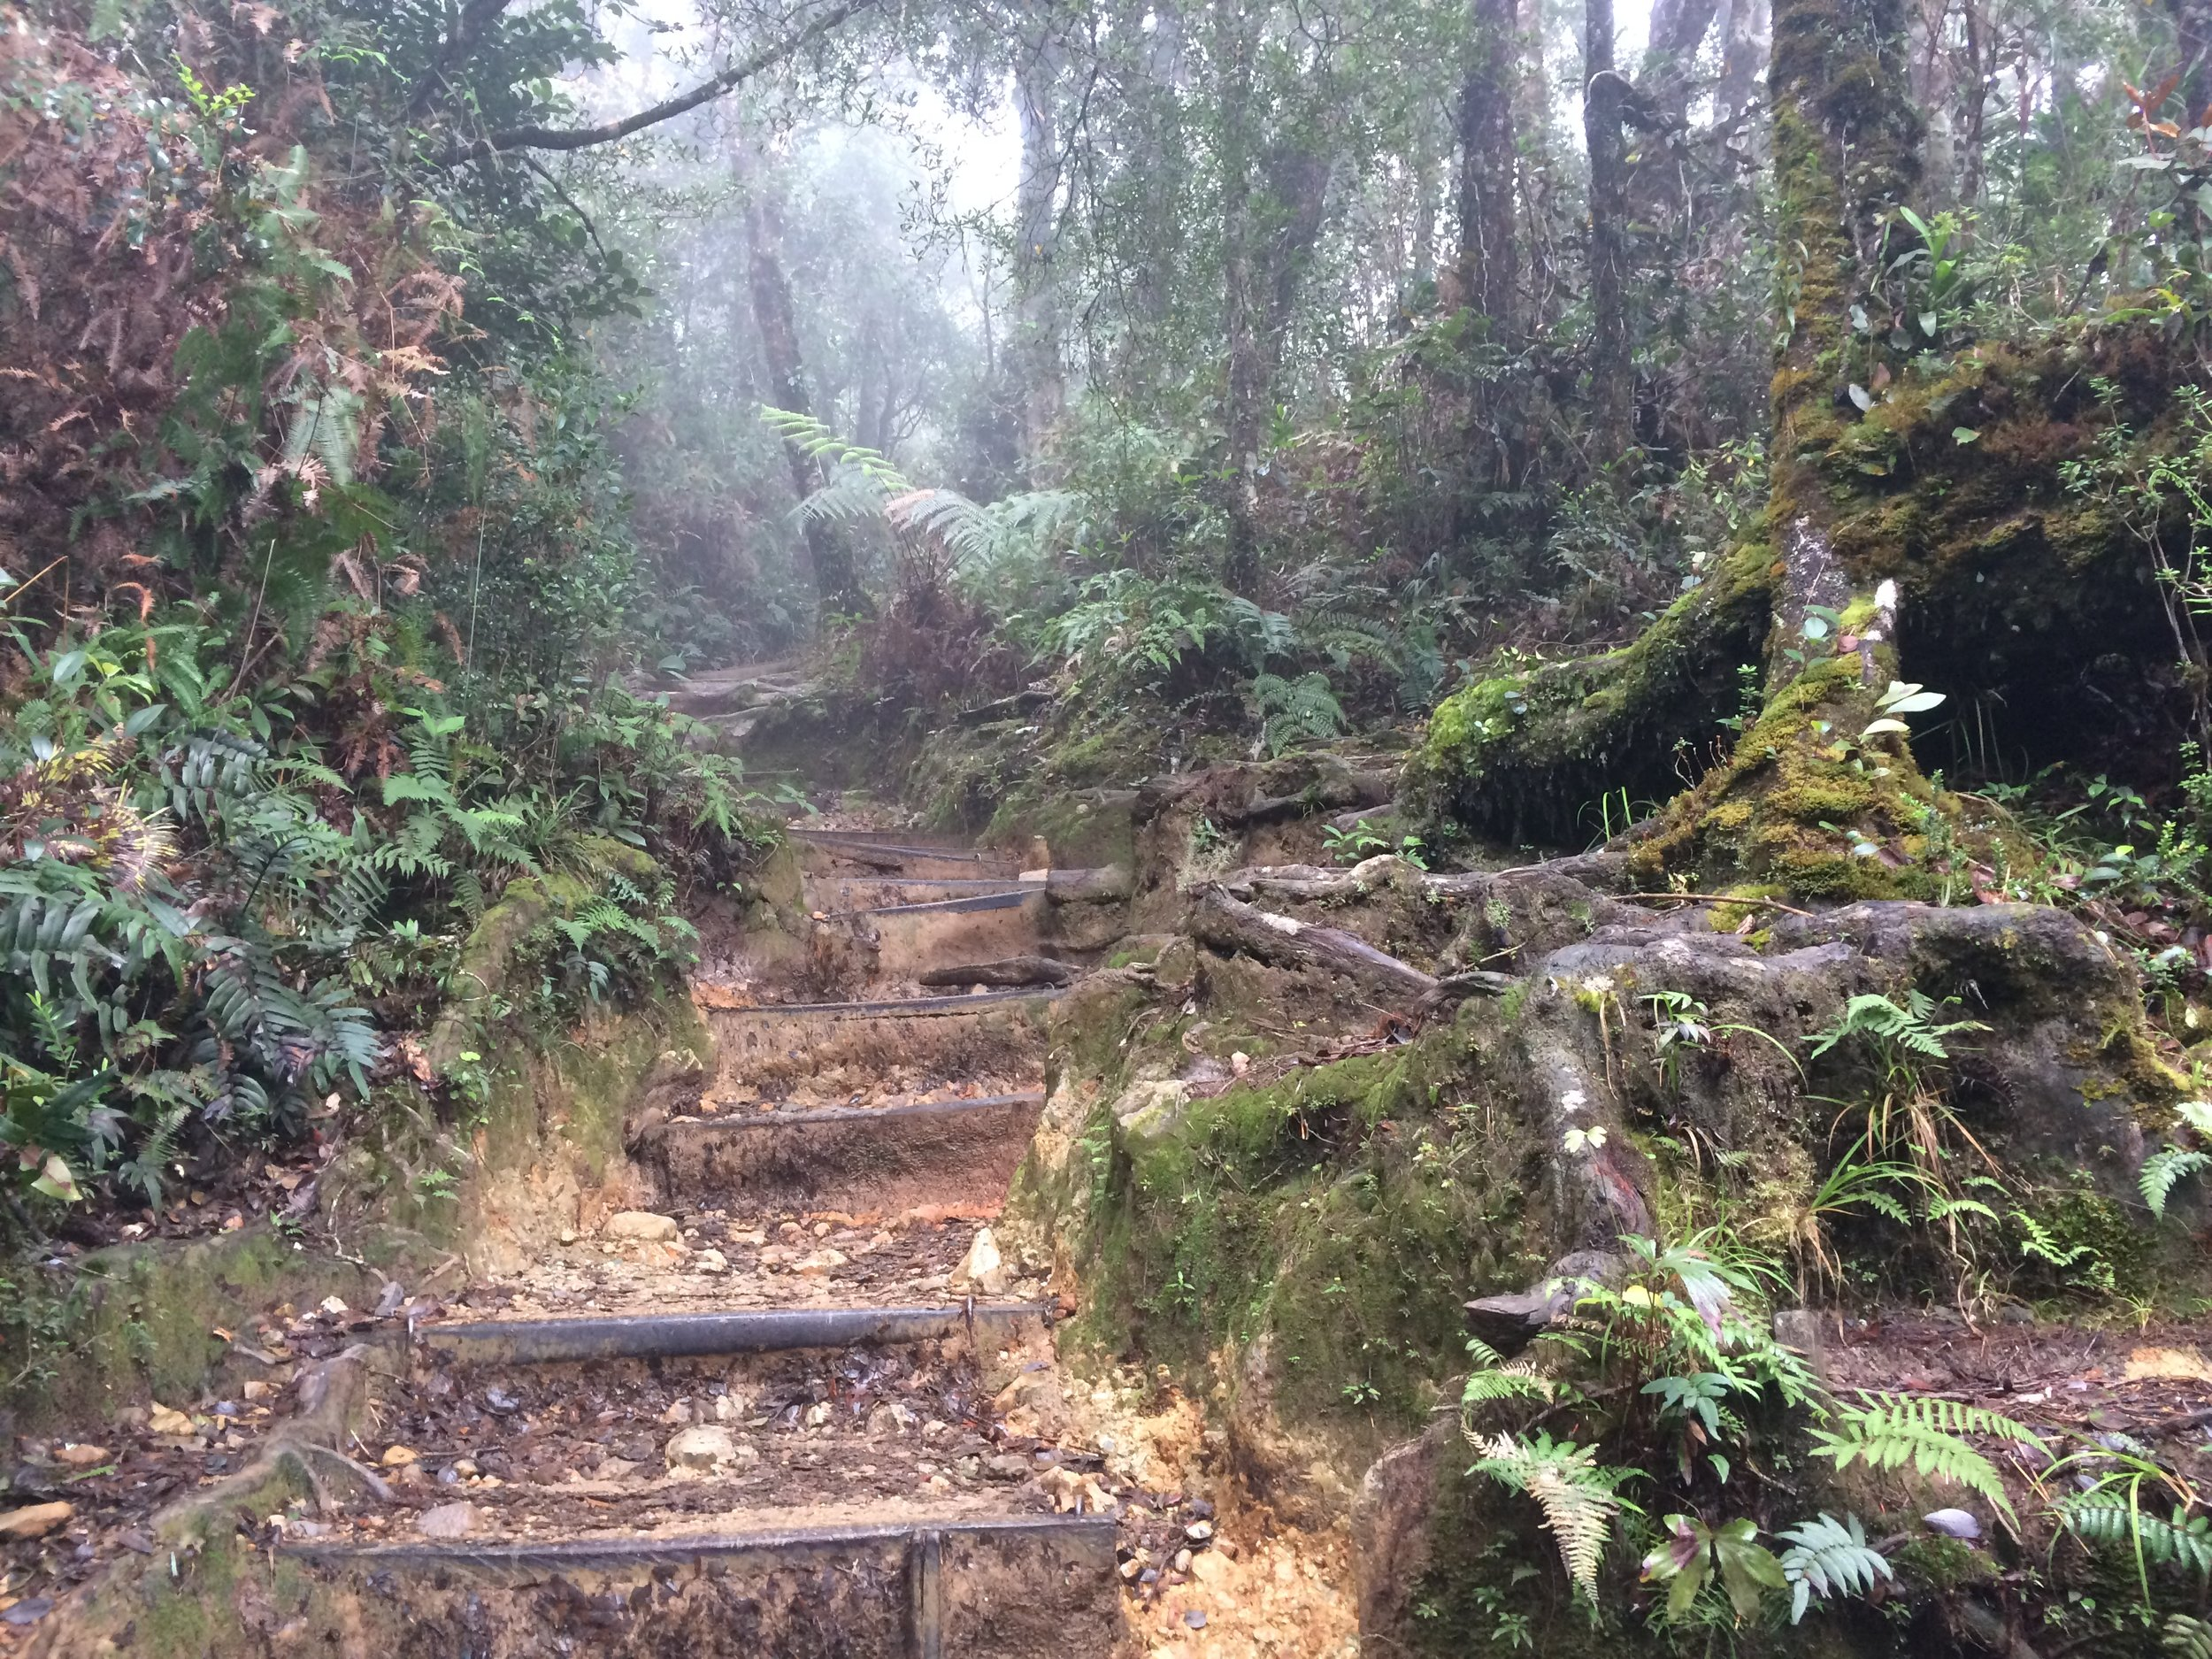 A bit of the trail, at the outset